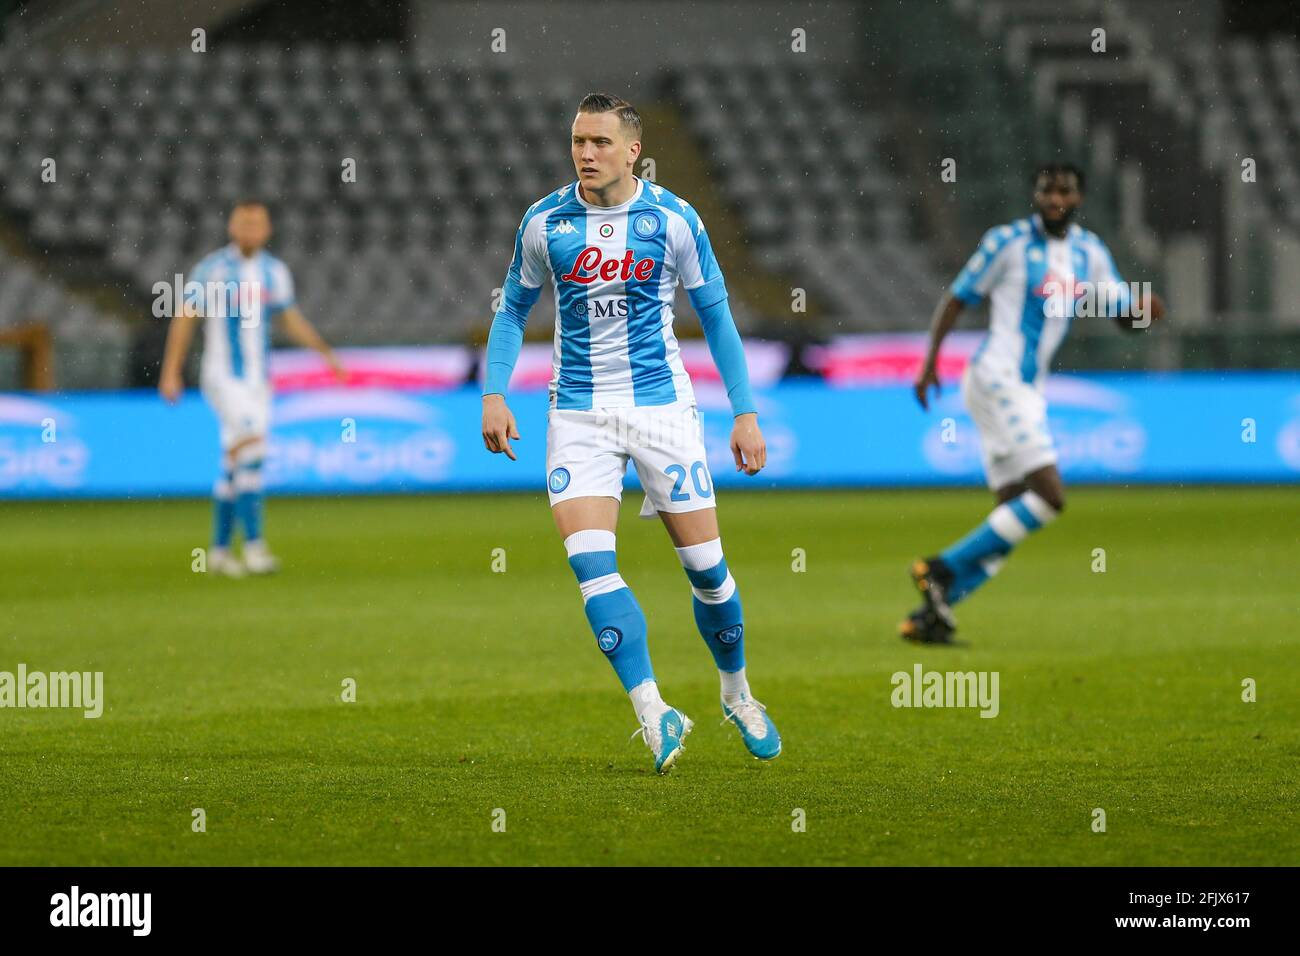 Piotr Zielinski High Resolution Stock Photography and Images - Alamy